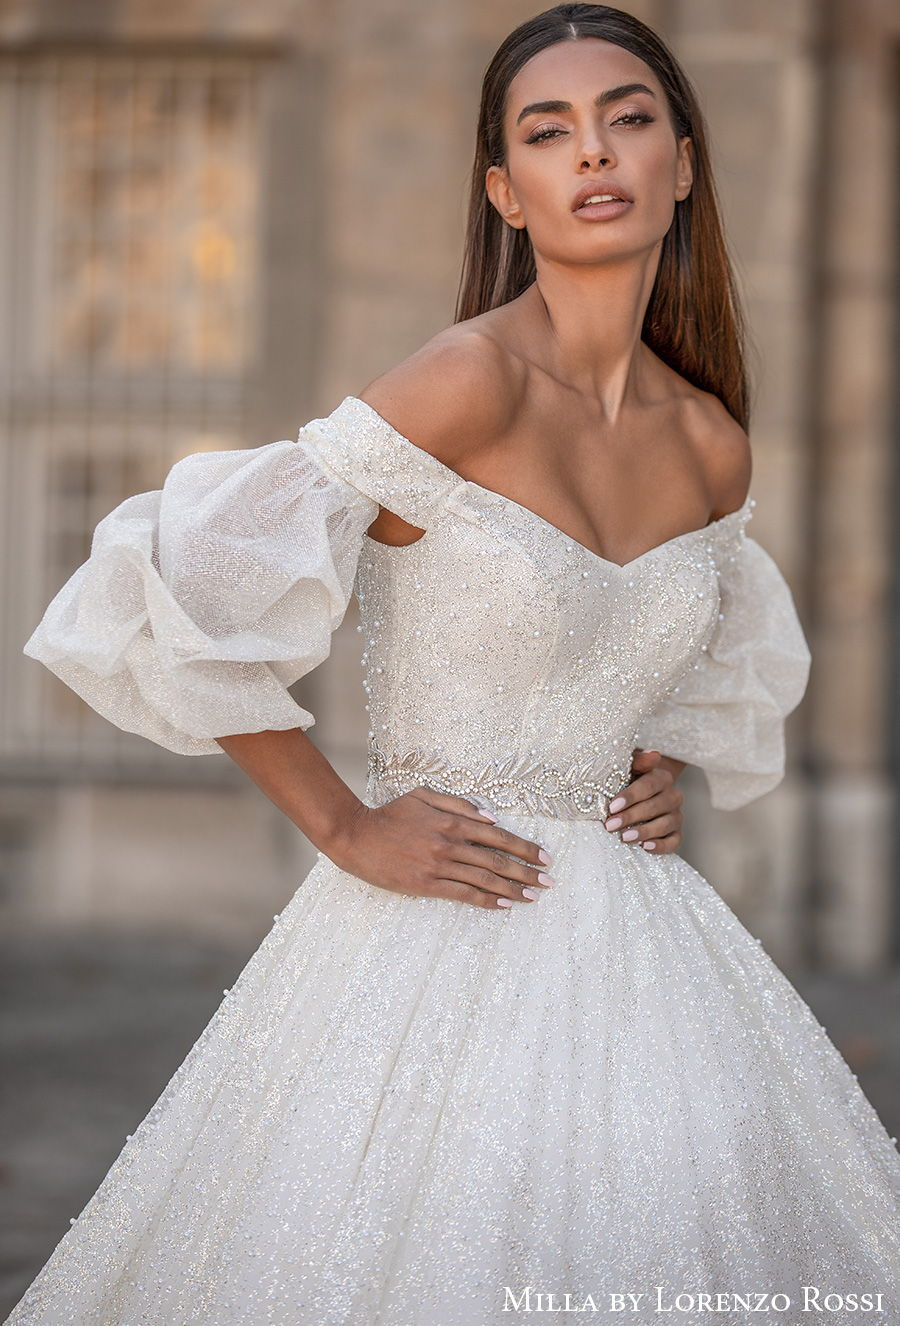 milla lorenzo rossi 2021 bridal half puff sleeves off the shoulder sweetheart neckline full embellishment glitter princess a  line wedding dress chapel train (roxana) zv